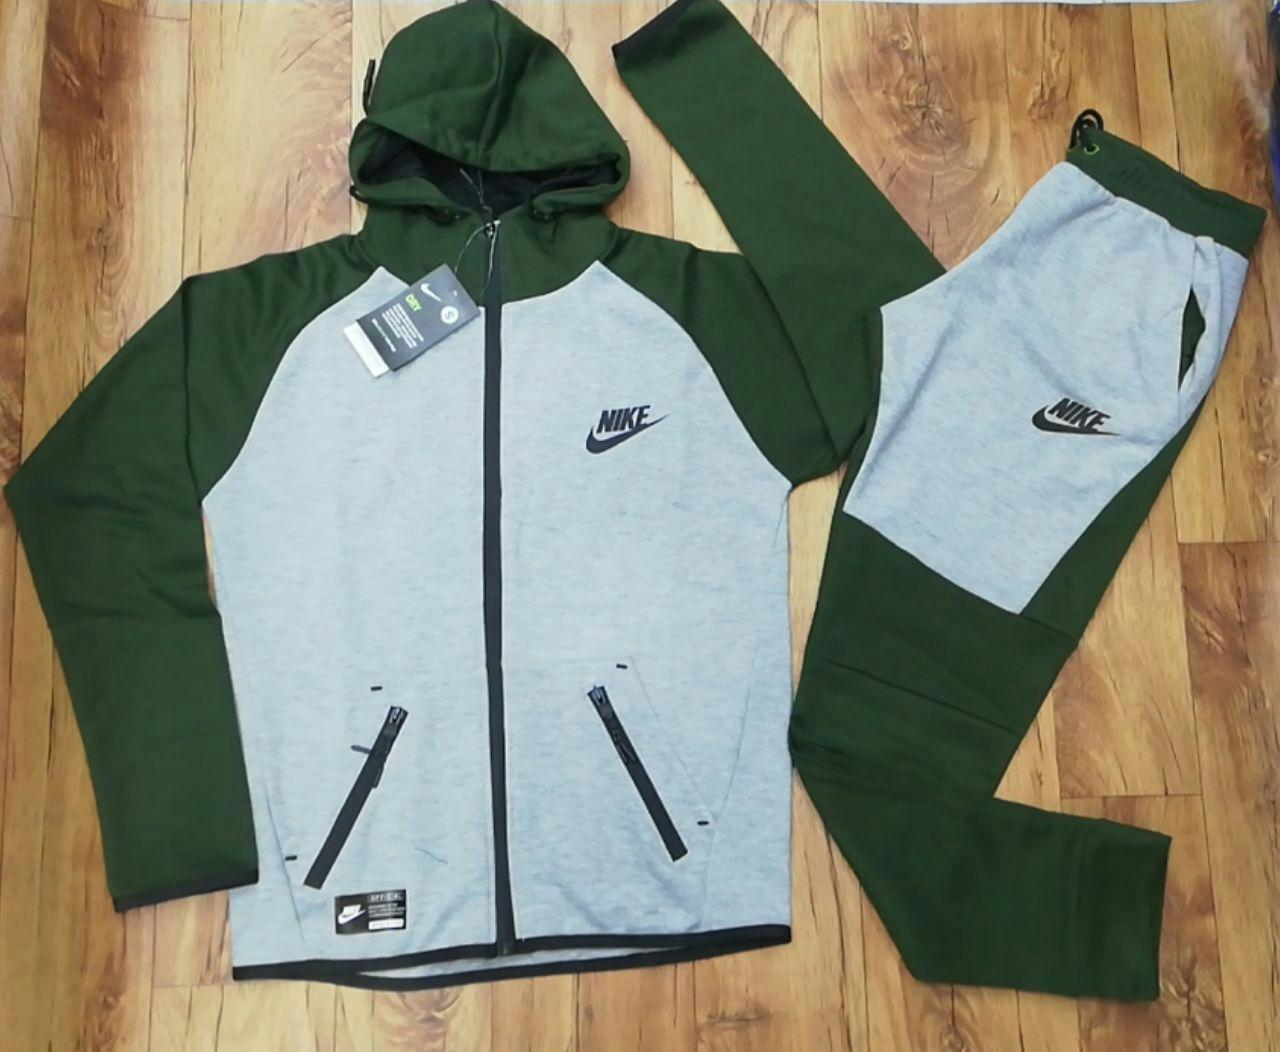 survetement nike nouvelle collection homme